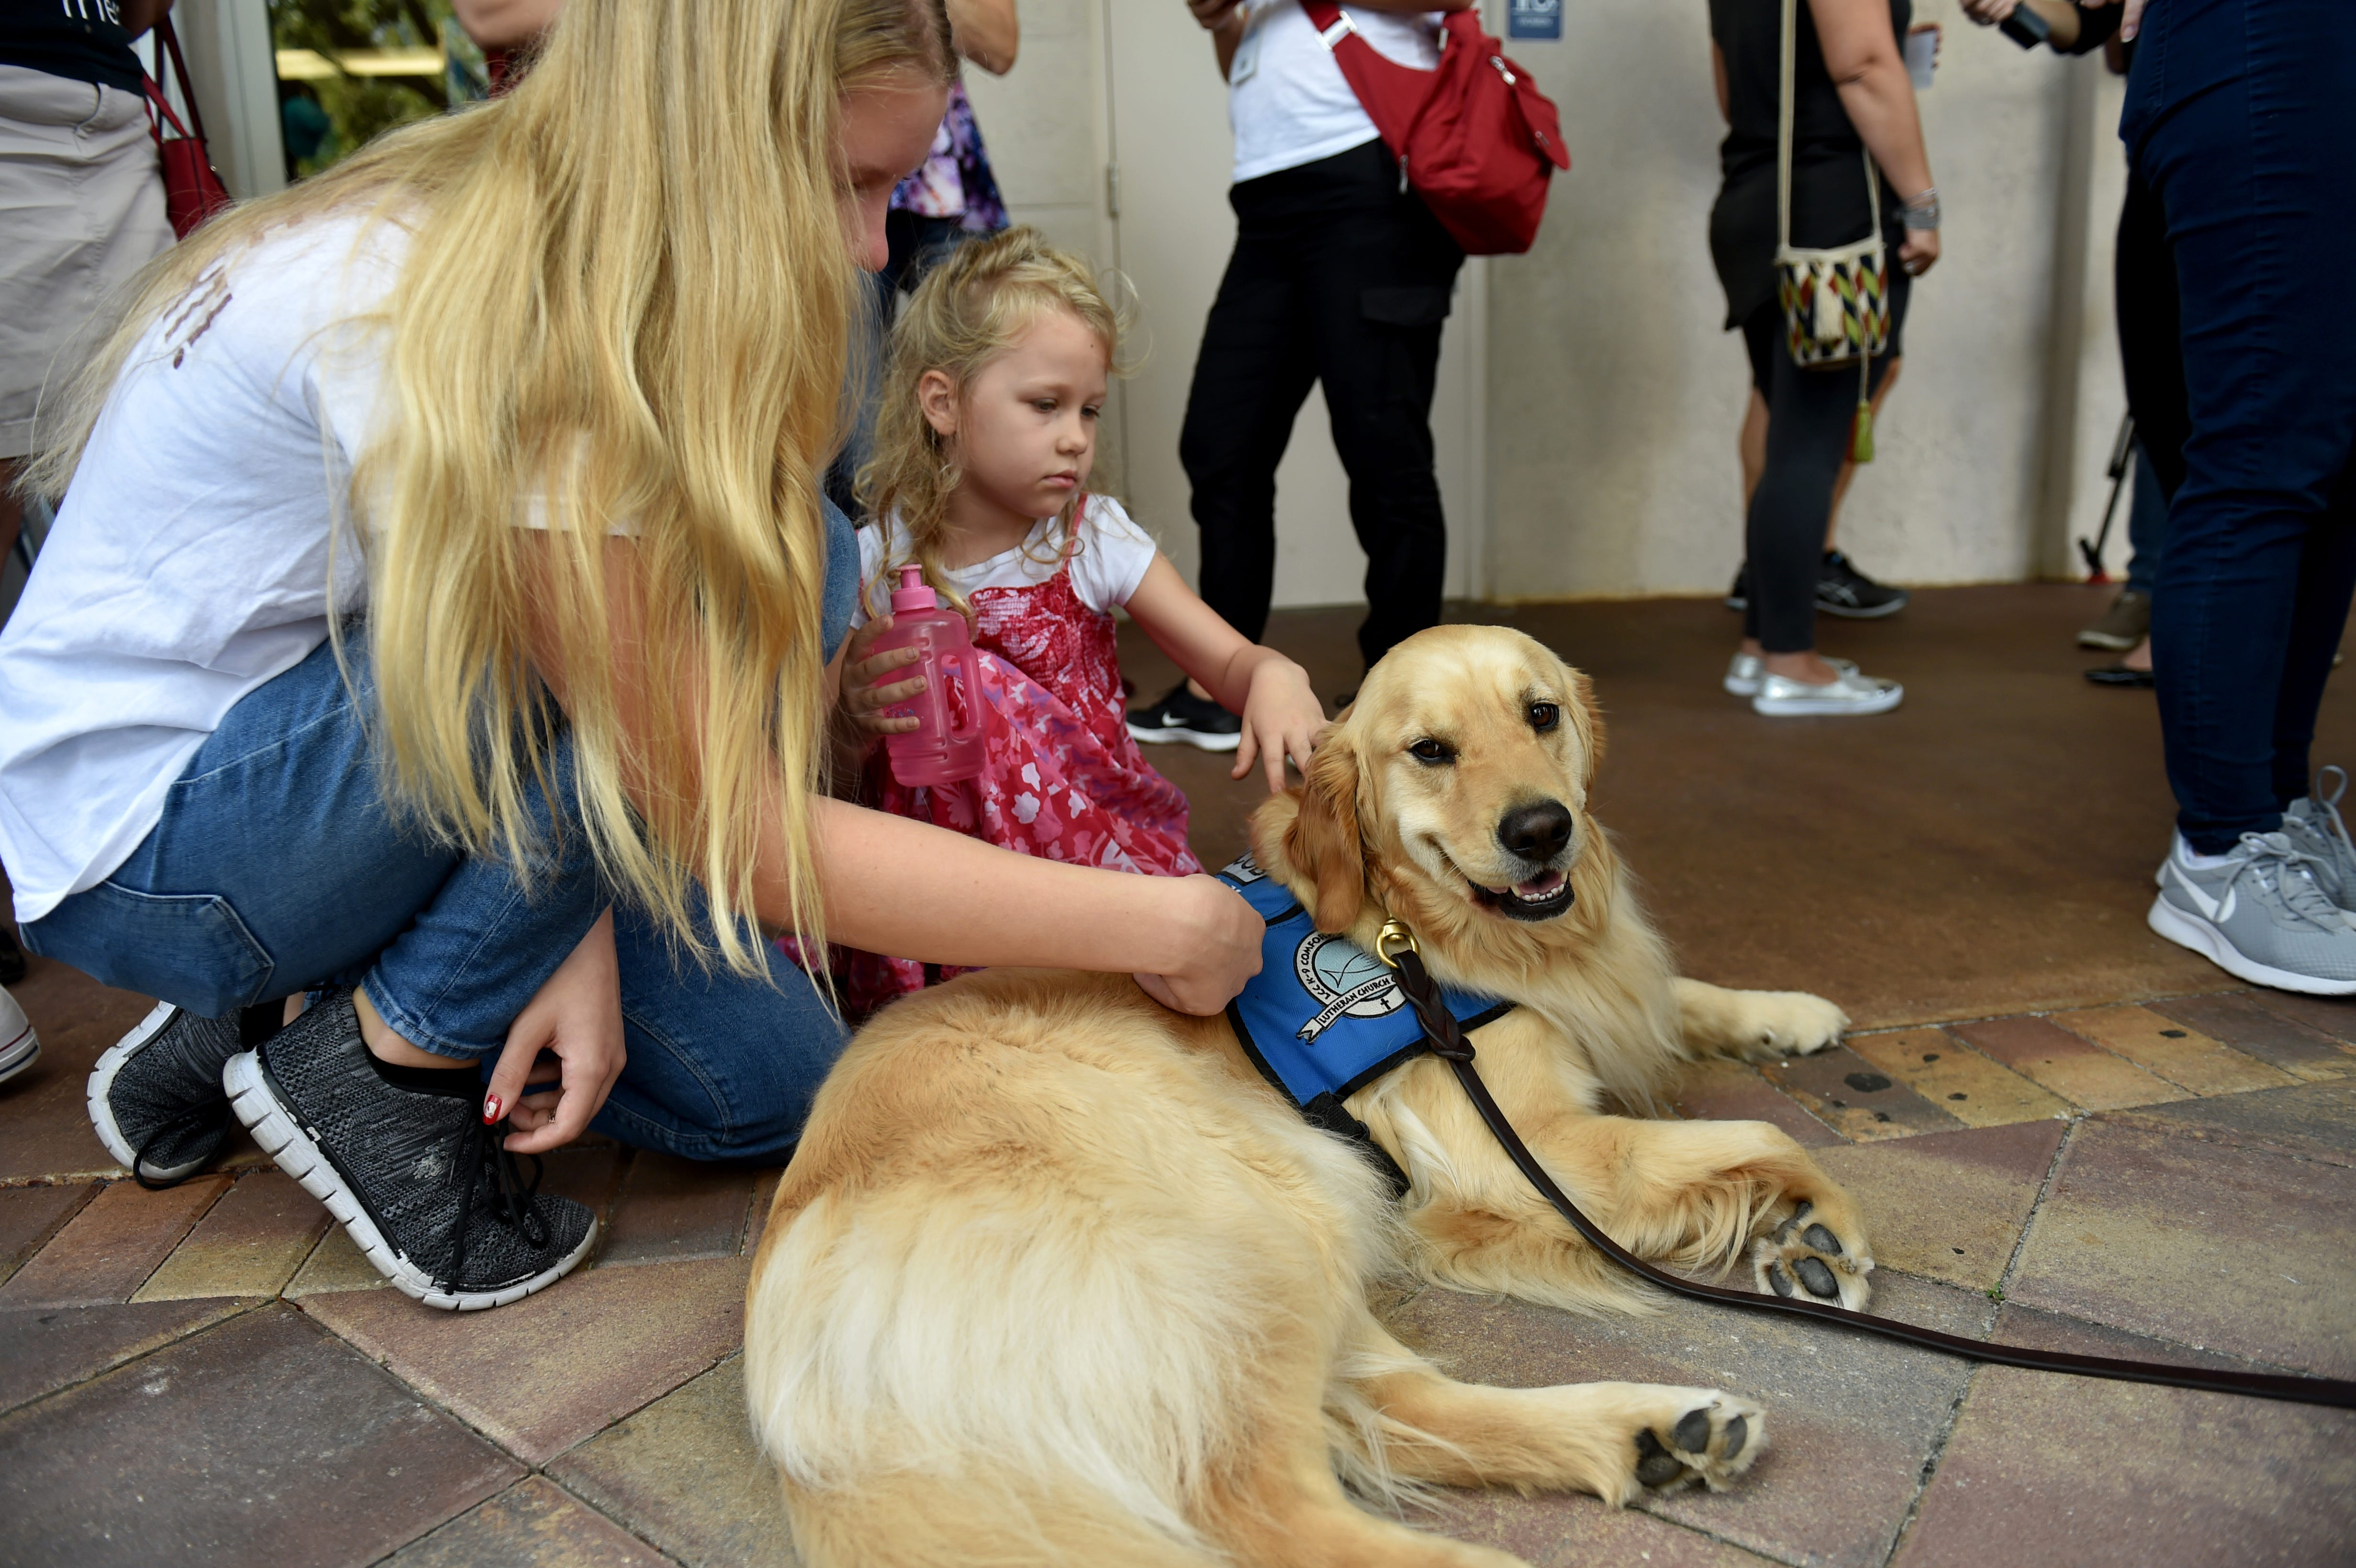 Image of: Plane Florida School Shooting Comfort Dogs Offer Support To Grieving Community Real Property Management Seacoast New Hampshire Florida School Shooting Comfort Dogs Offer Support To Community